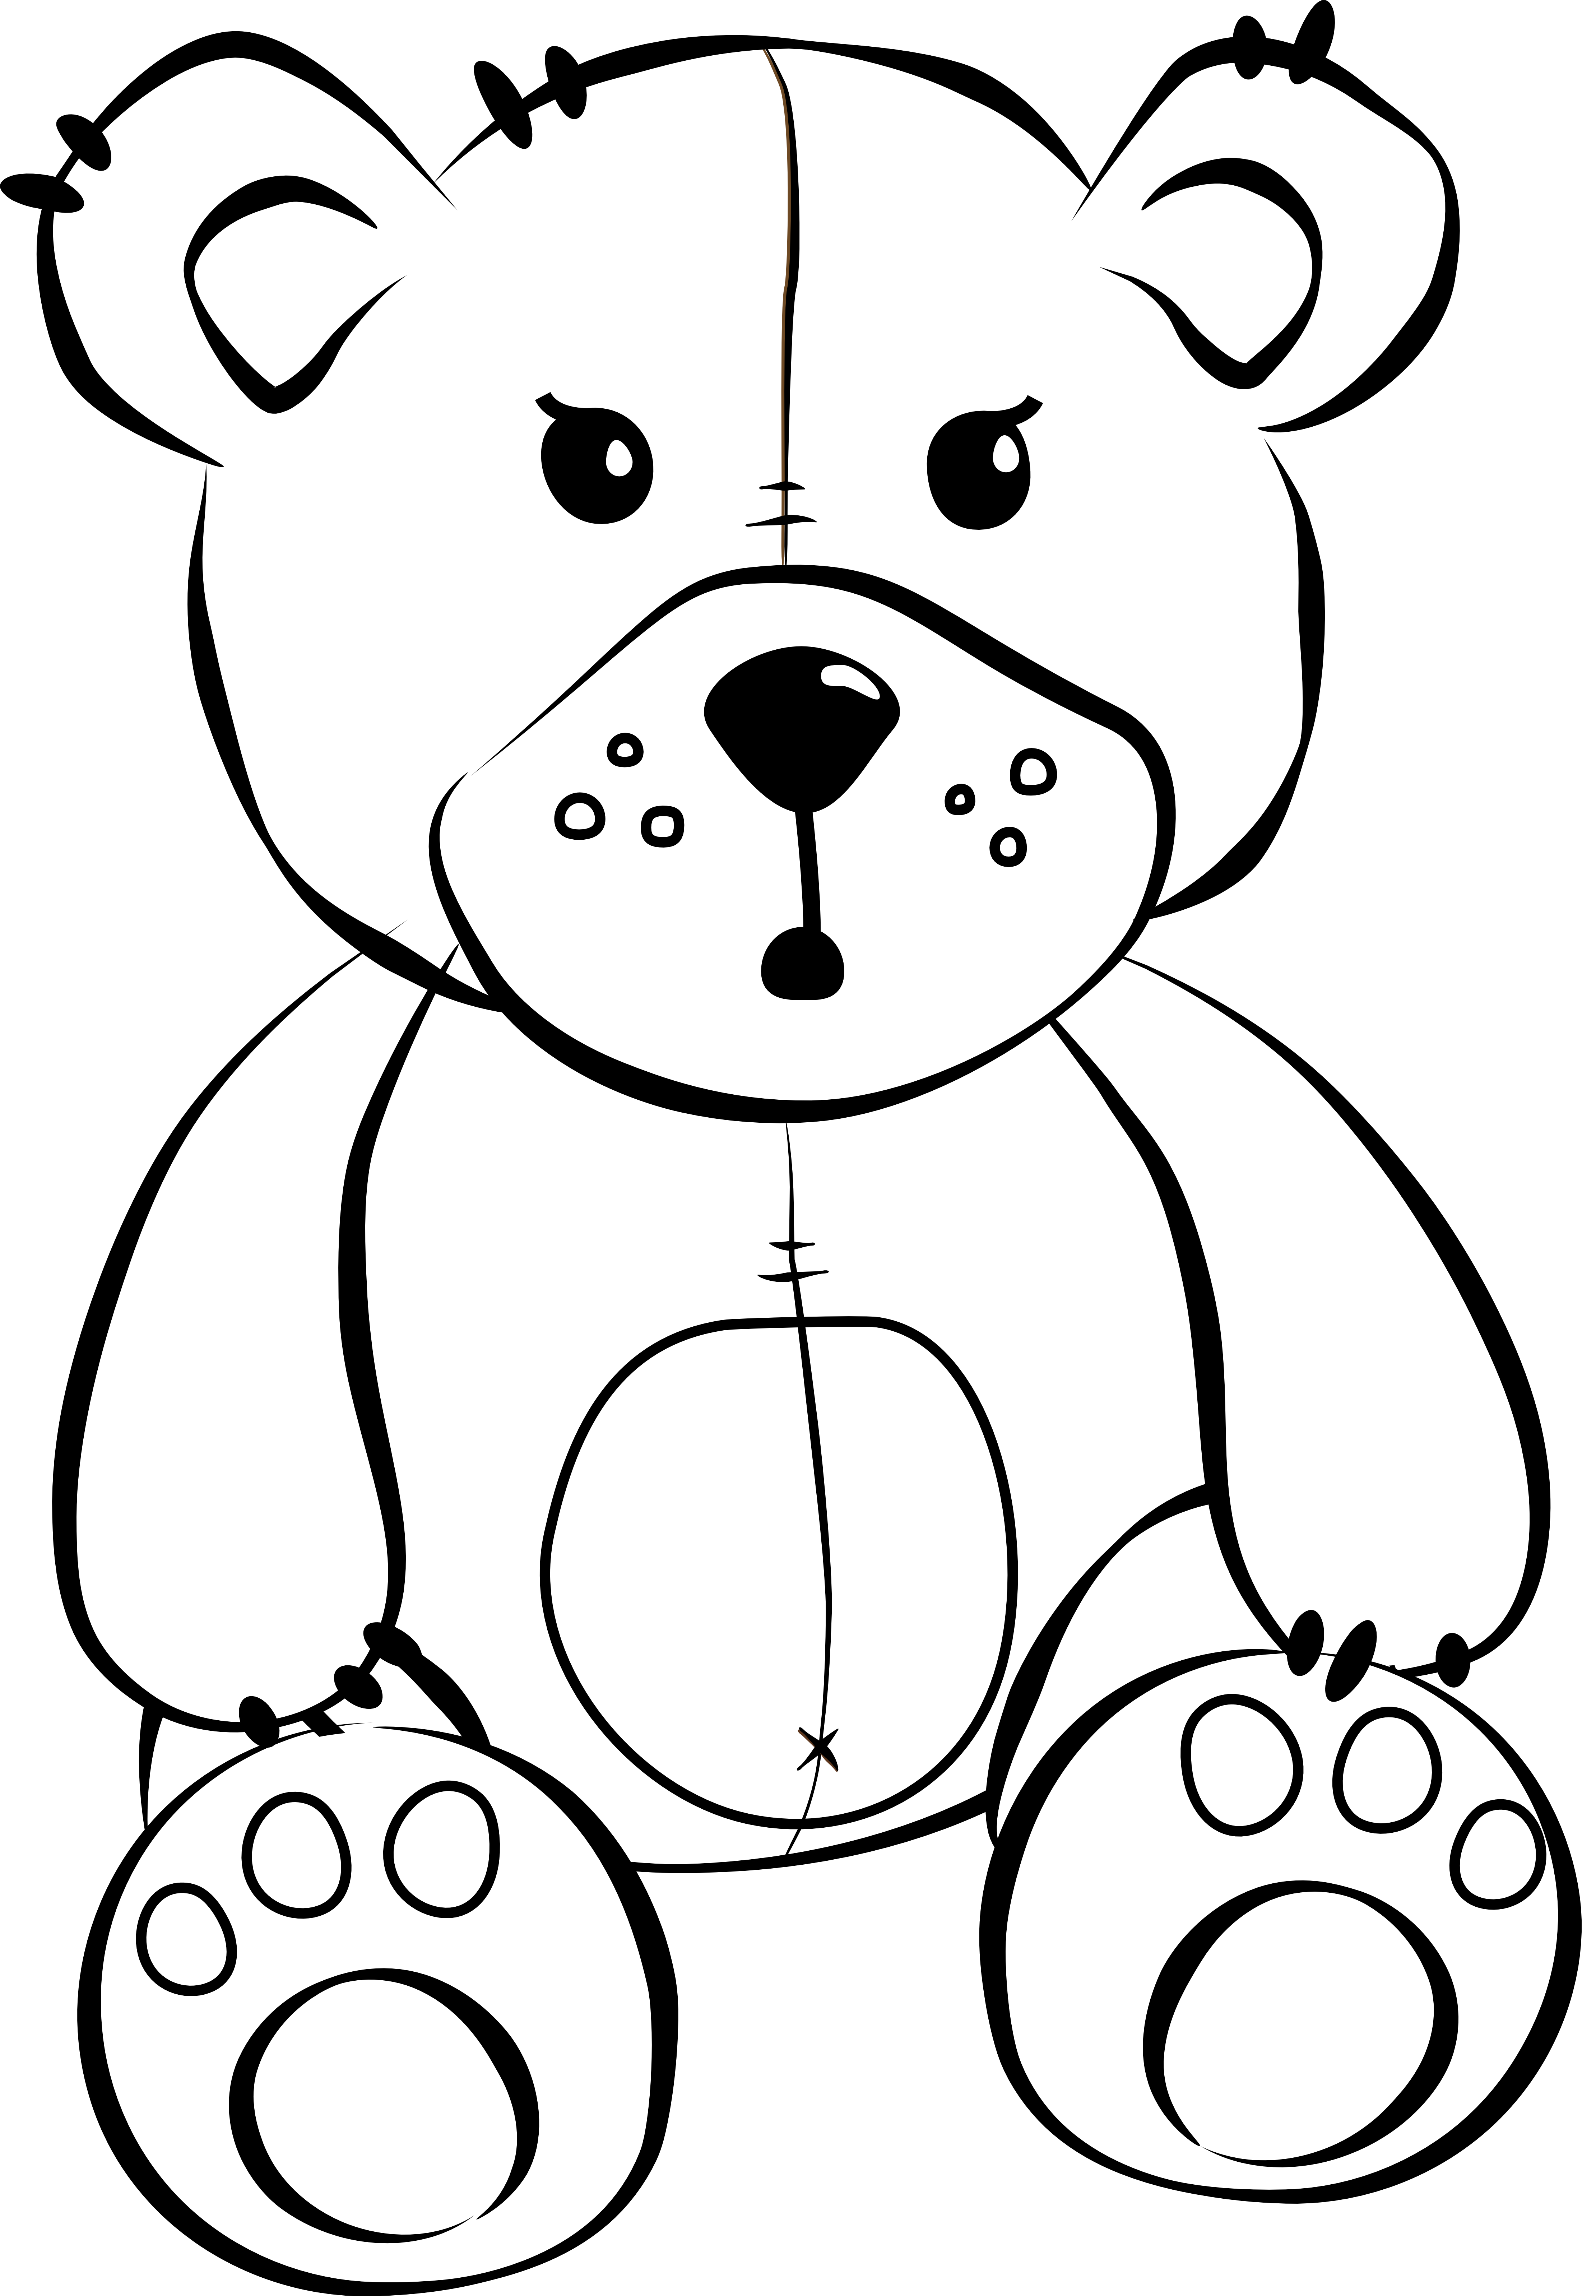 Teddy bear black and white white bear cartoon free download clip art on - PNG Free Black And White